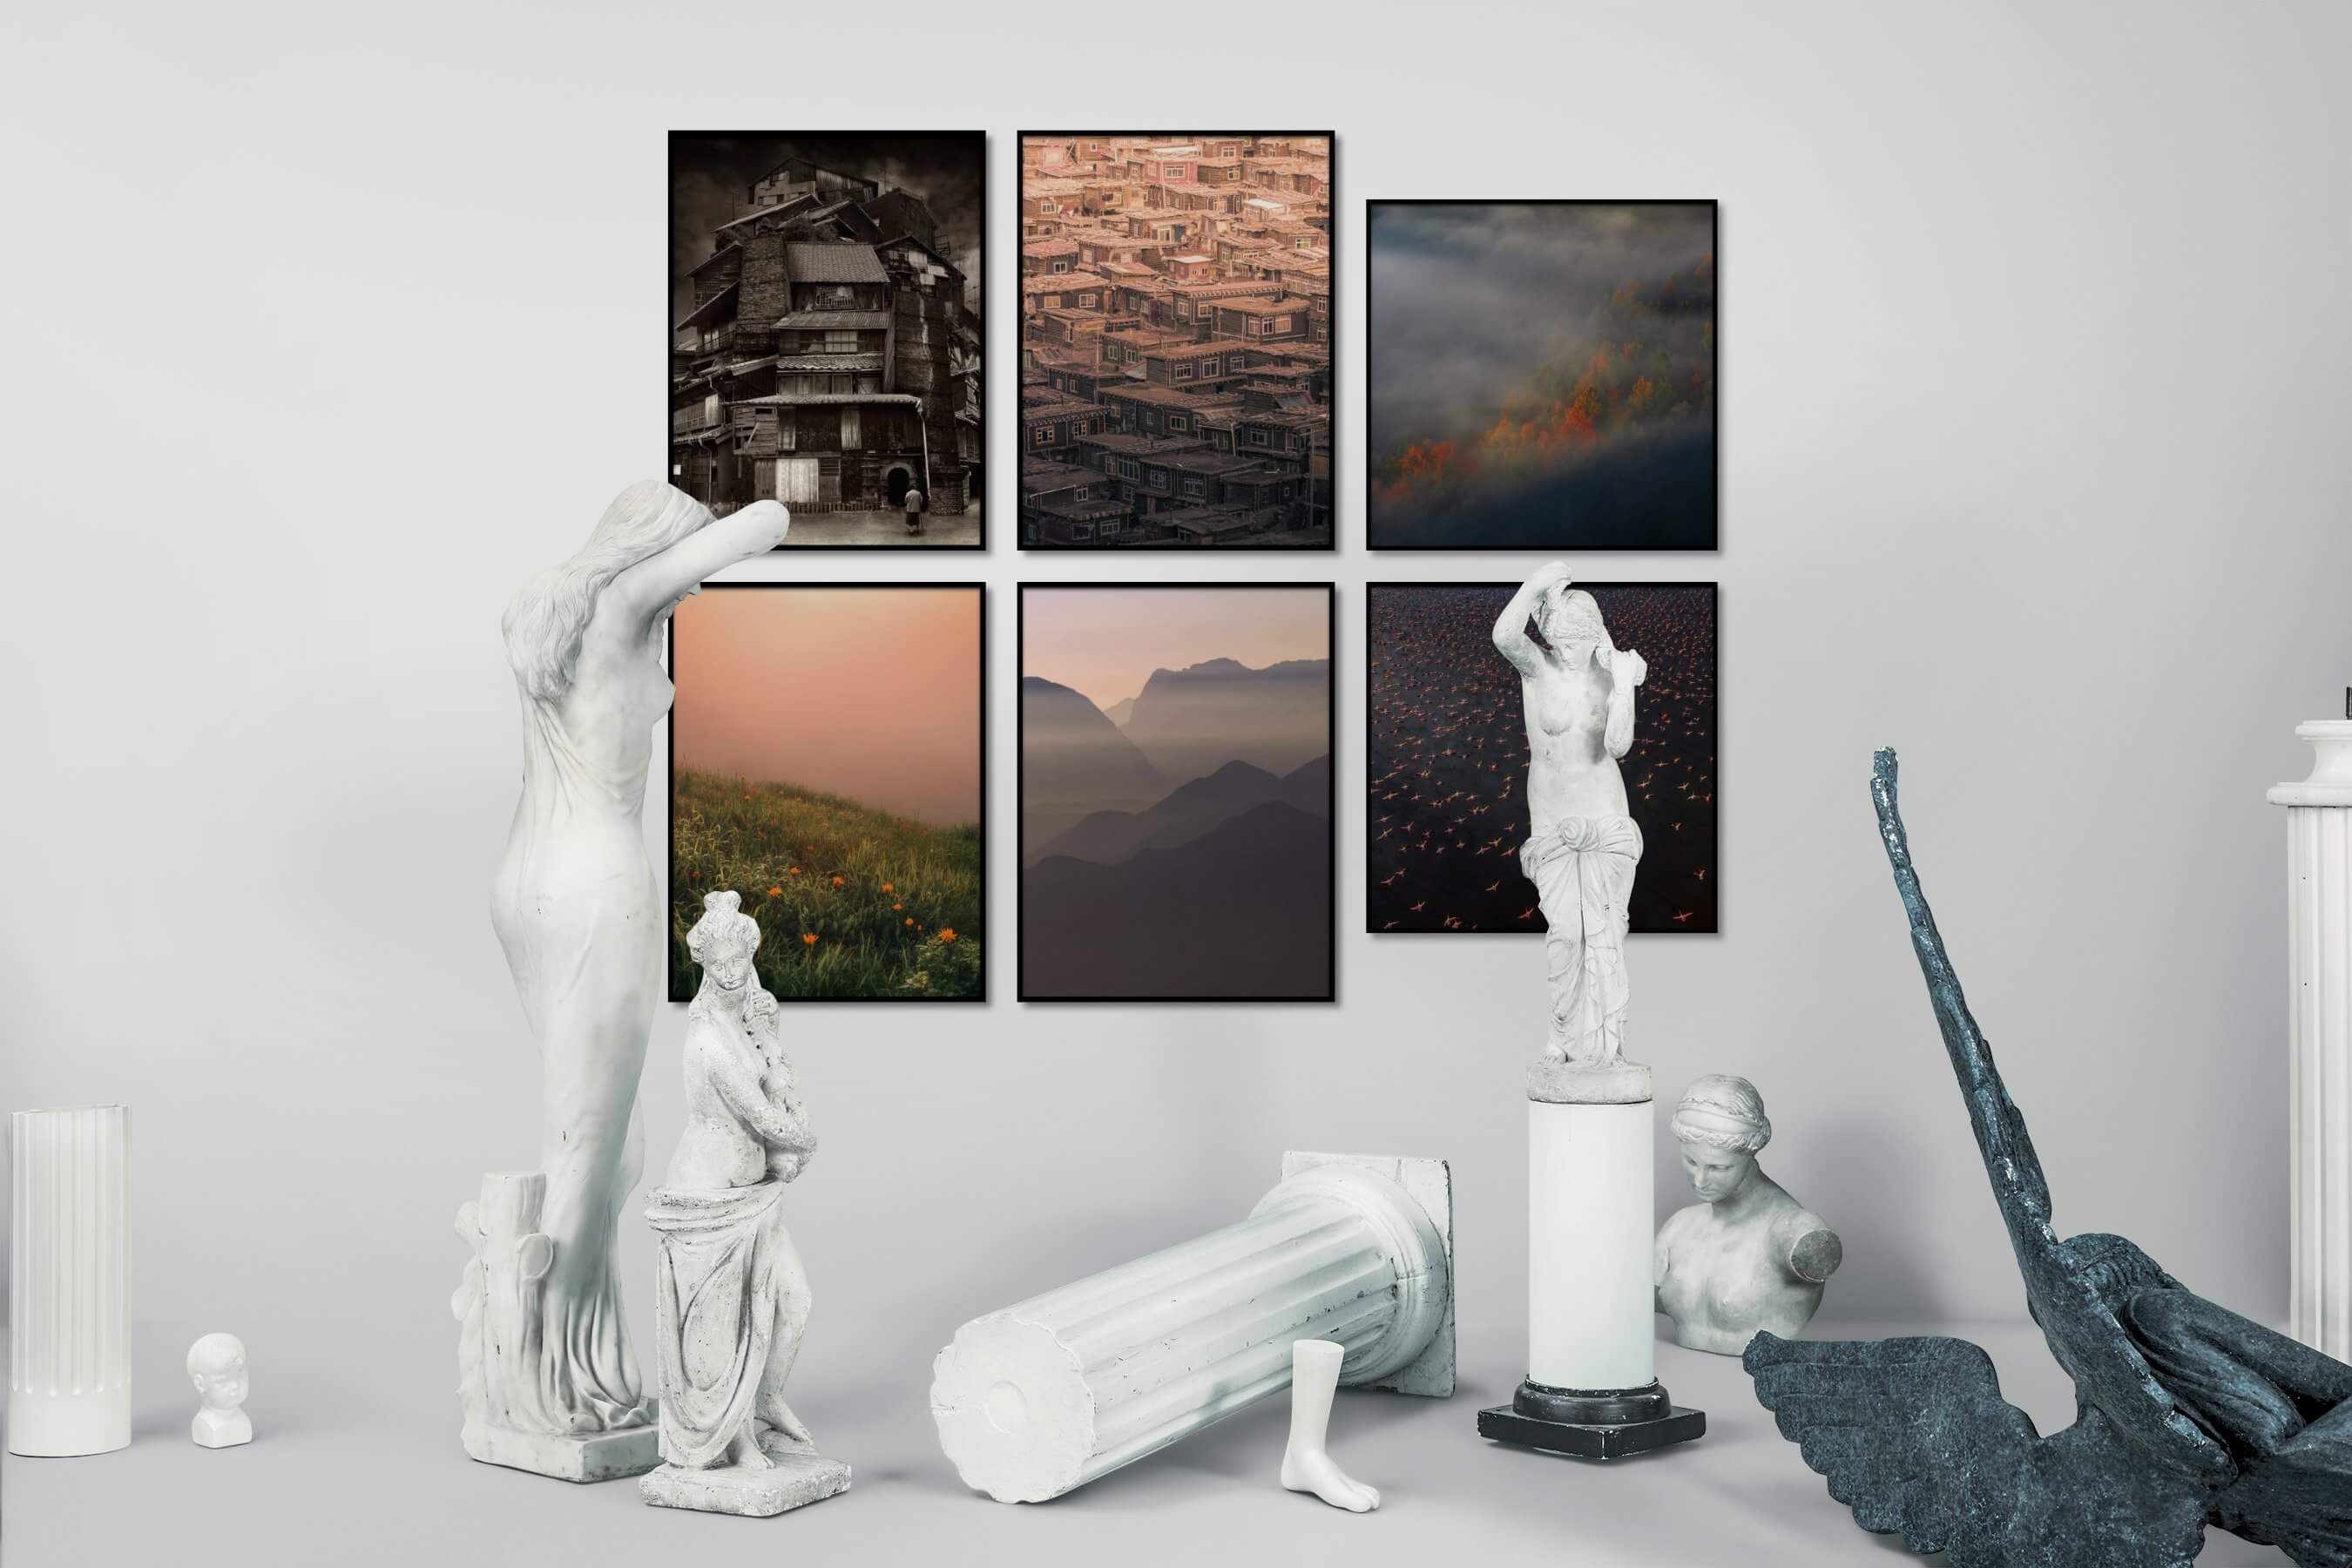 Gallery wall idea with six framed pictures arranged on a wall depicting Artsy, Black & White, City Life, For the Maximalist, Flowers & Plants, Country Life, Mindfulness, Nature, For the Moderate, and Animals